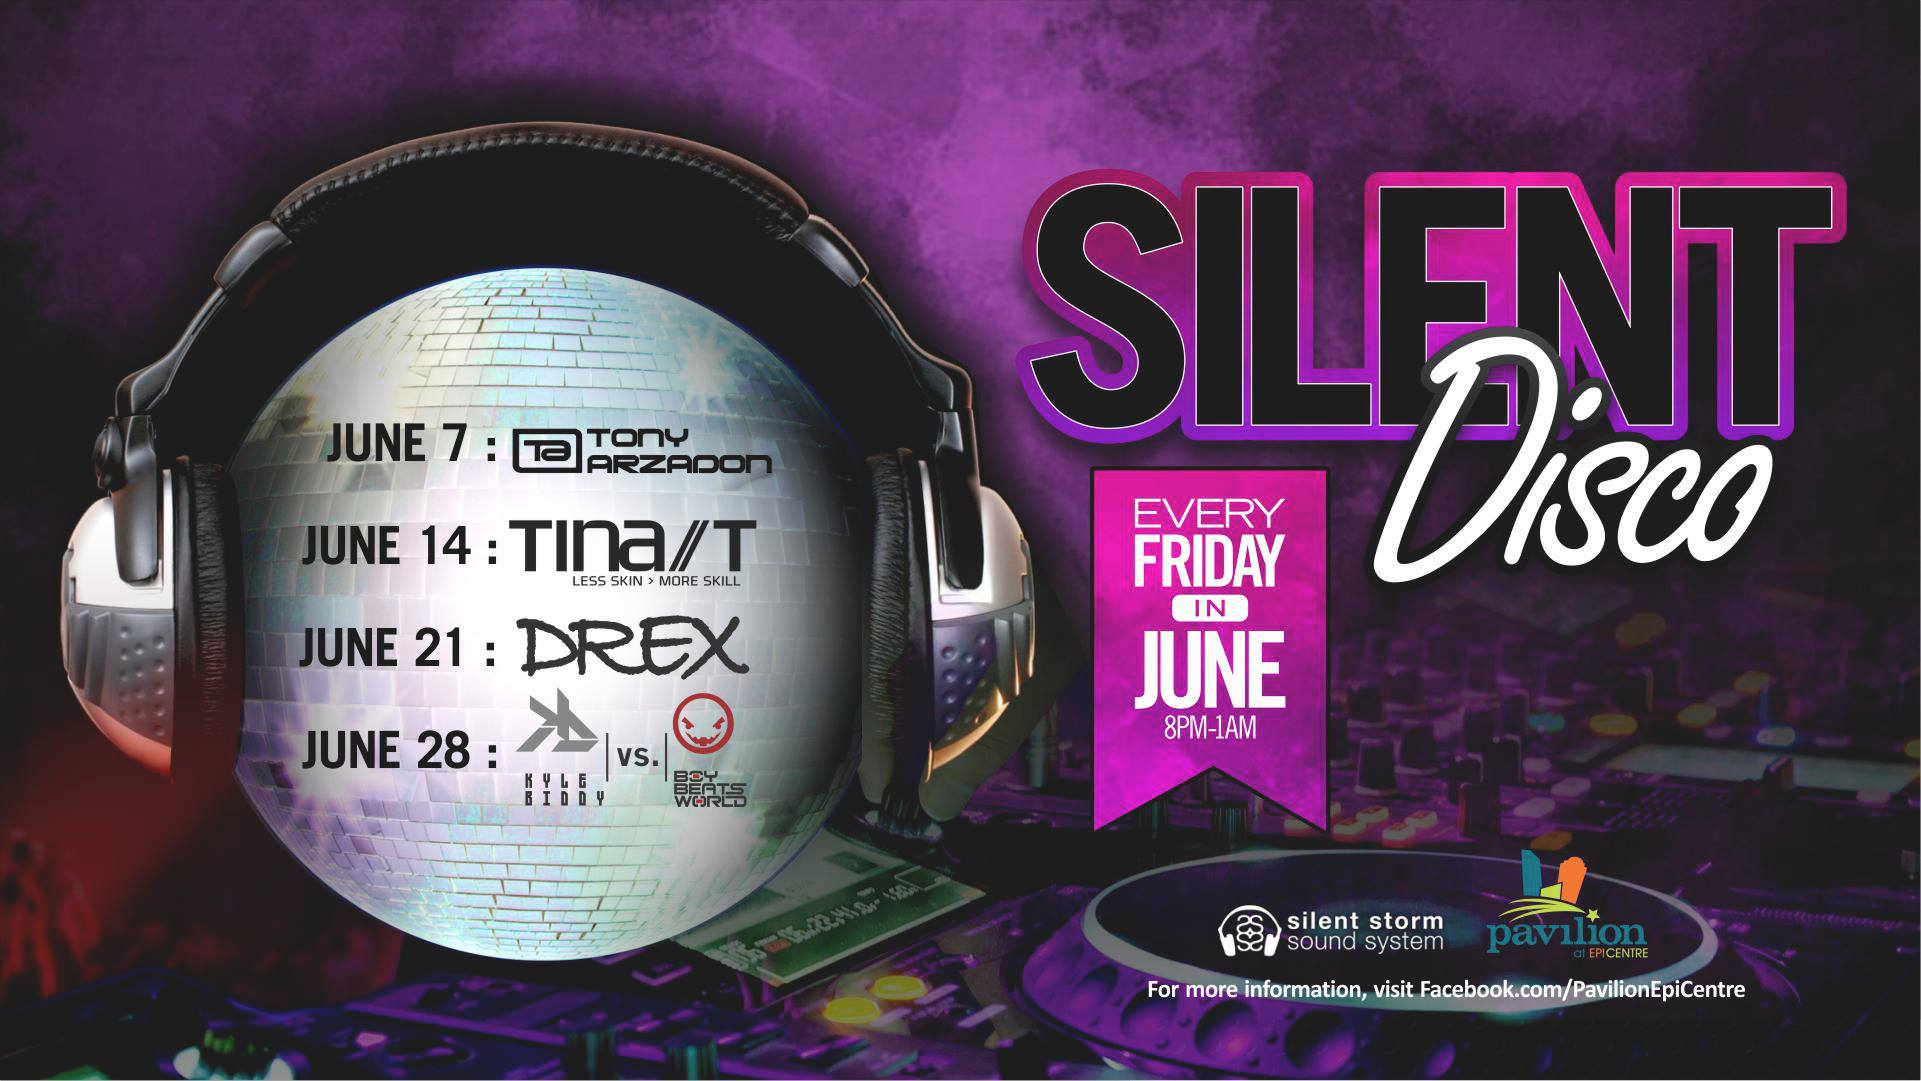 Silent Disco CLT - Every Friday in June